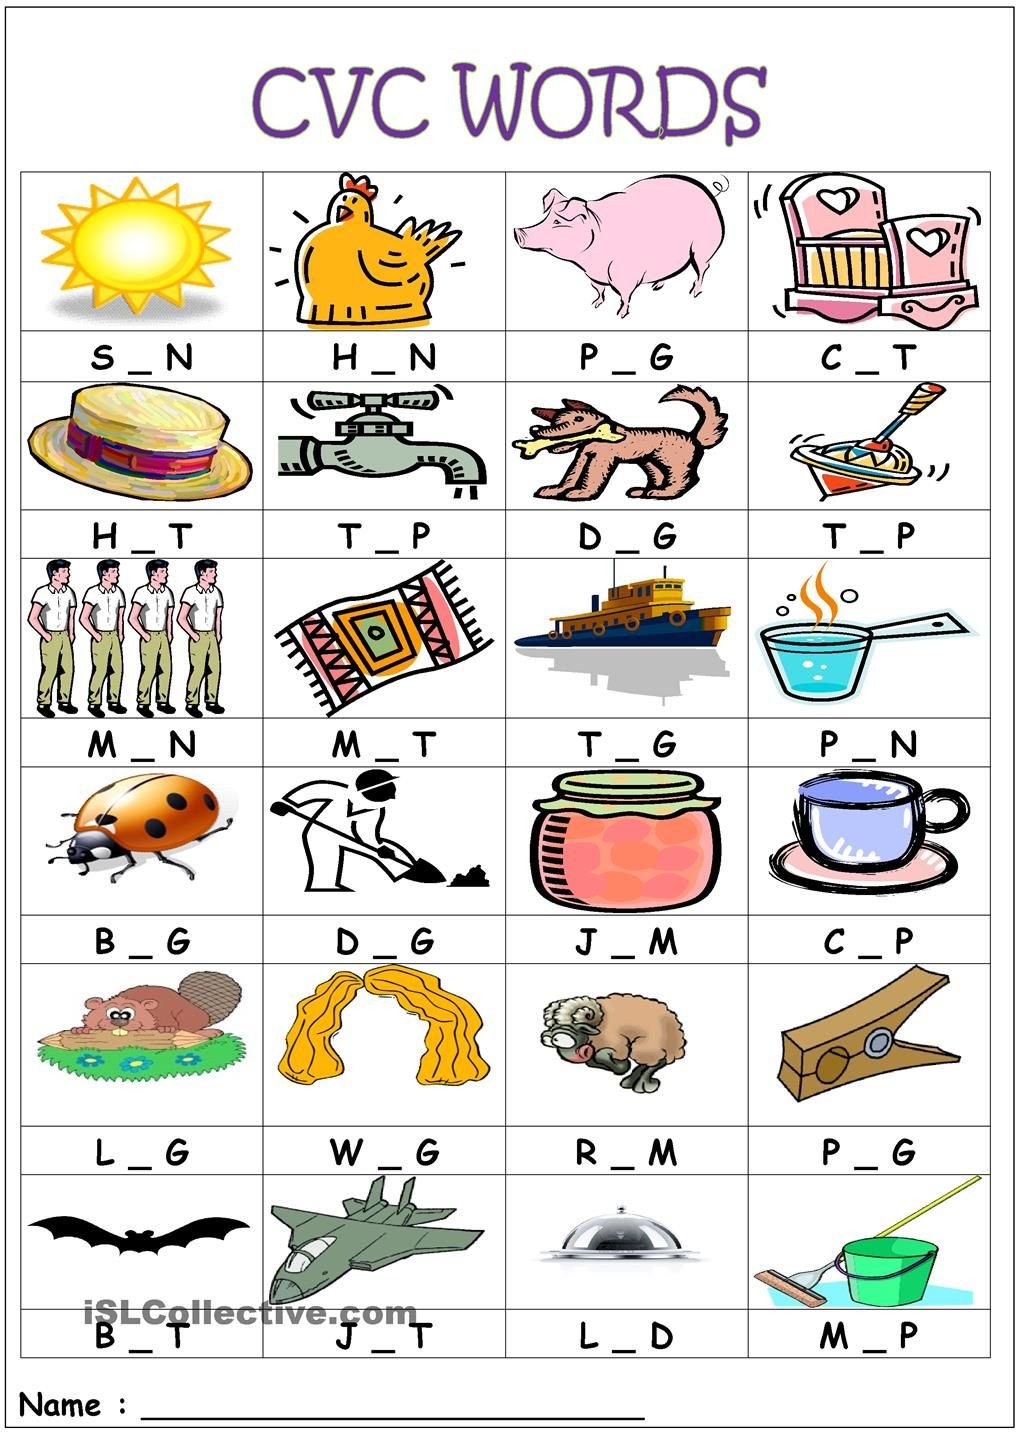 Free Printable Cvc Worksheets Cvc Words Medial sounds